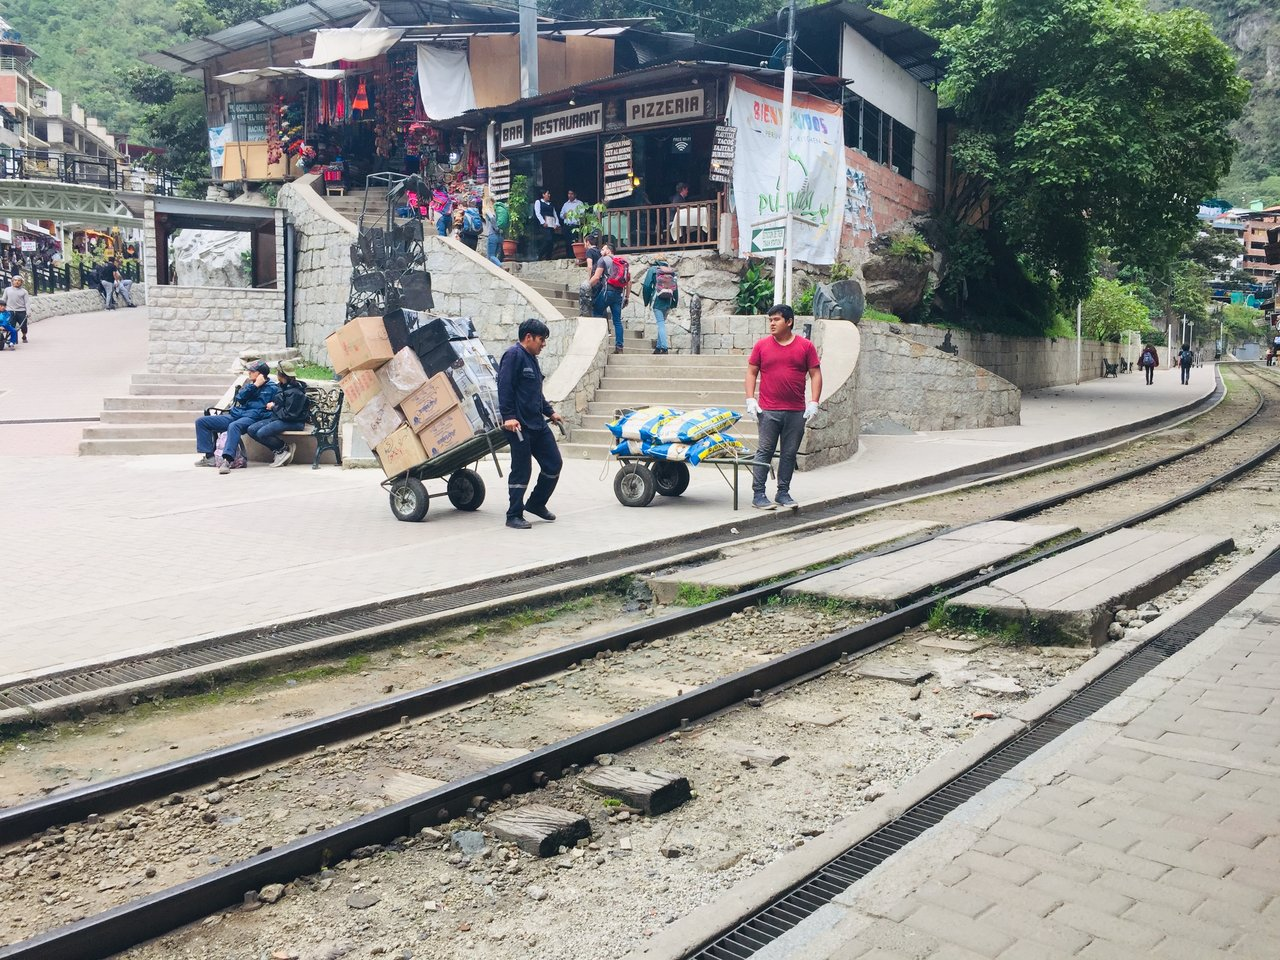 No cars, so when the train arrives to restock the restaurants, these guys don't waste any time | Photo taken by Matthew M